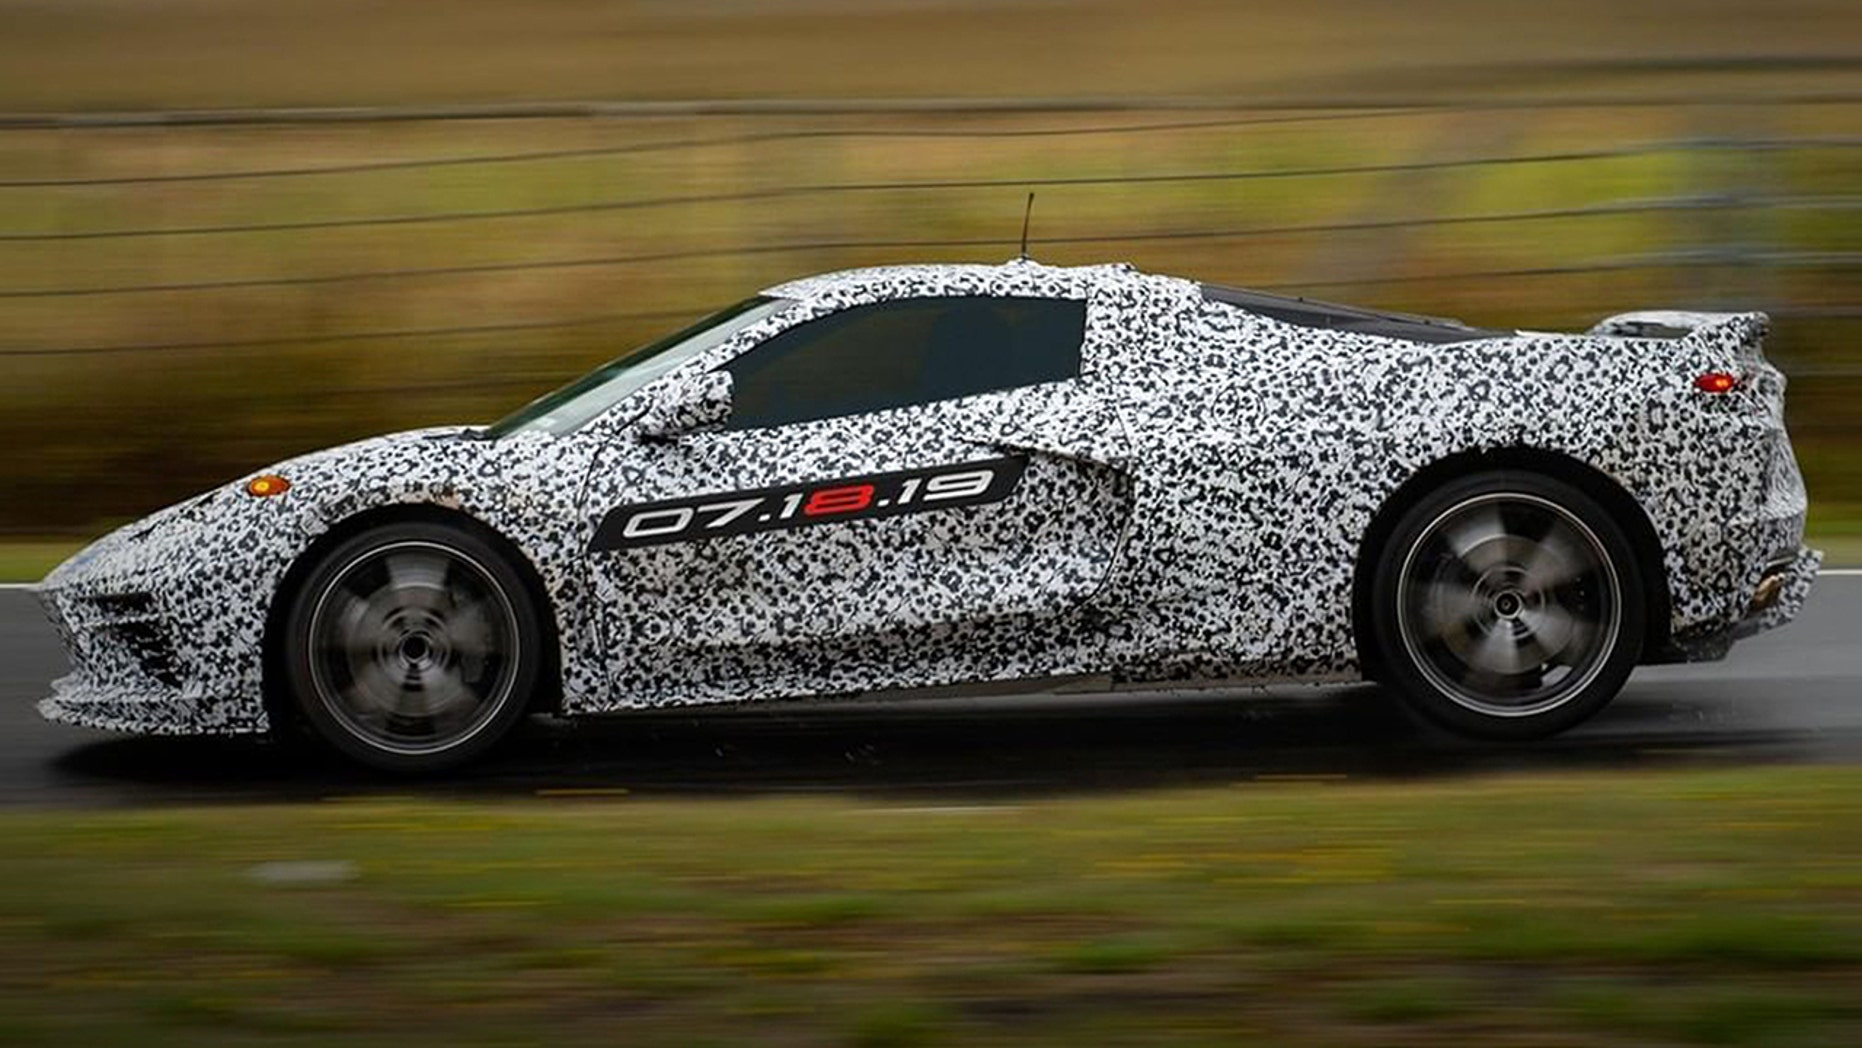 Mid Engine Chevrolet Corvette Confirmed For 2020 Will Debut July 18